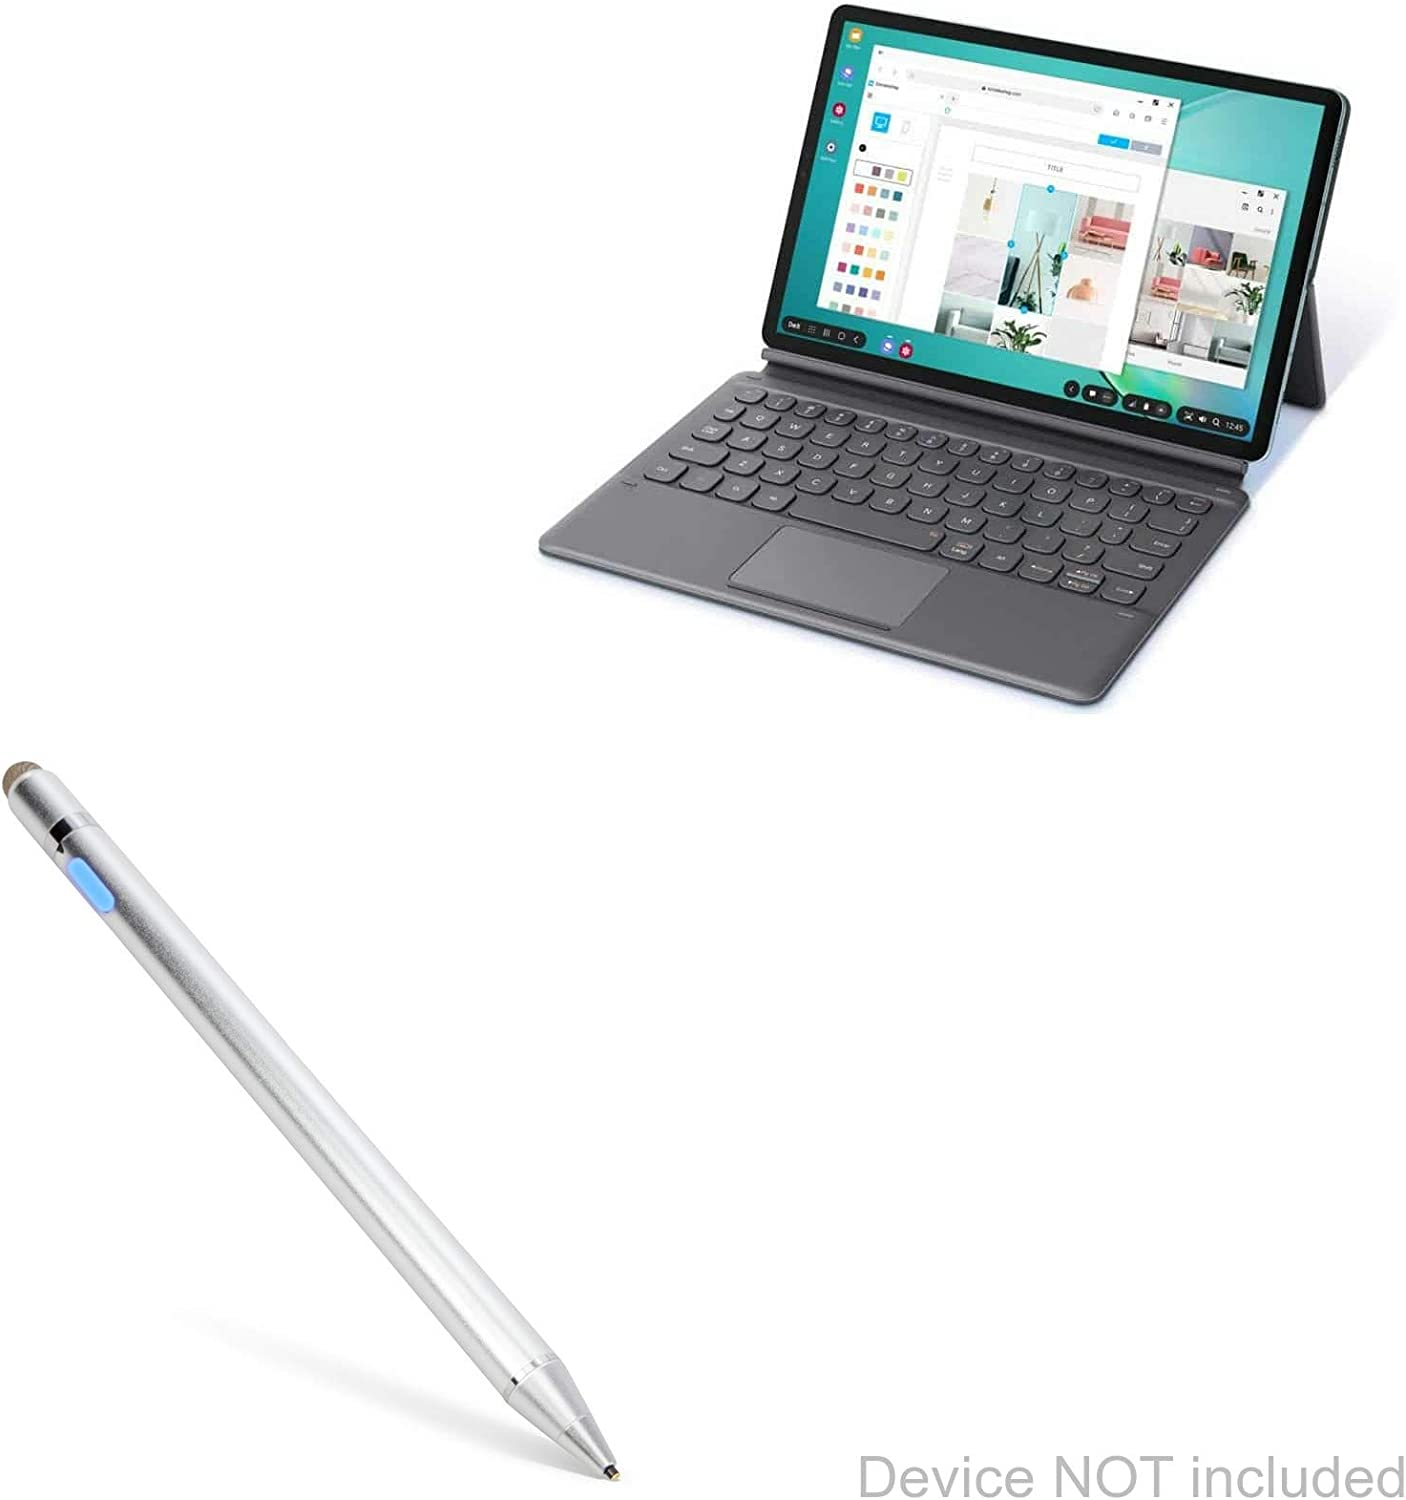 Broonel Black Fine Point Digital Active Stylus Pen Compatible with The Samsung Galazy Tab S6 10.5